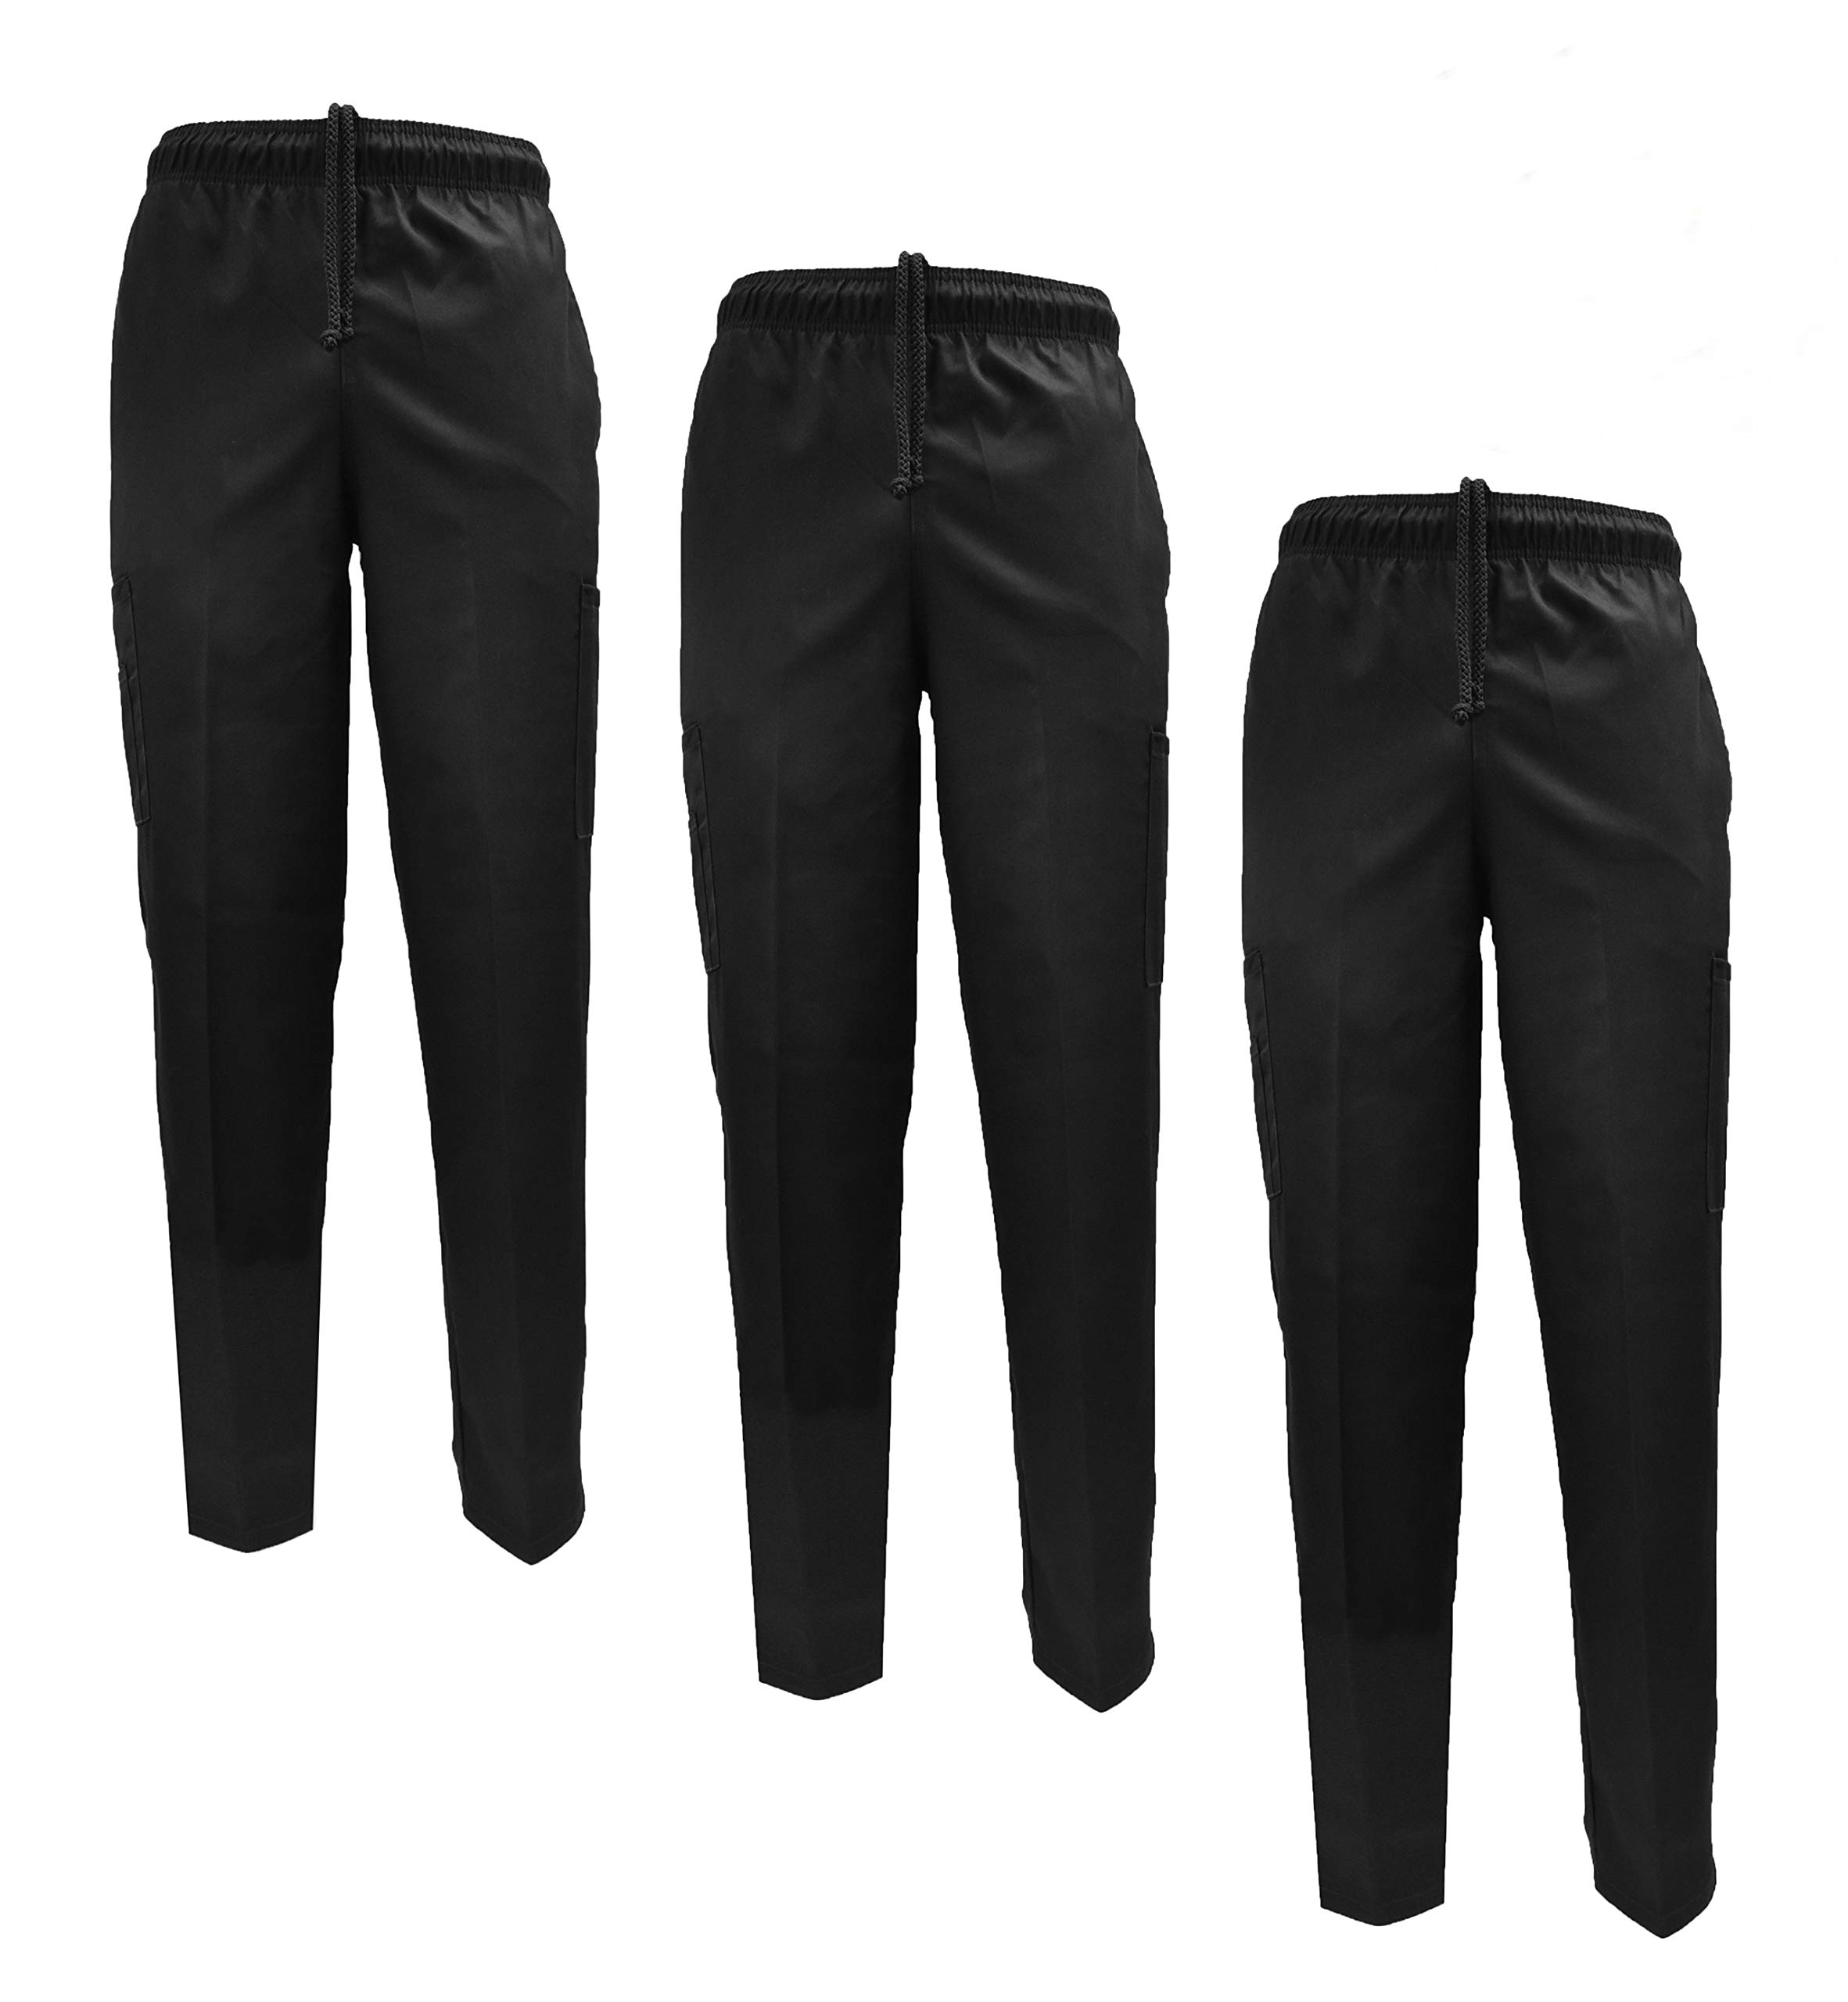 Natural Uniforms Classic Chef Pants (Large, Black Pack of 3) by Natural Uniforms